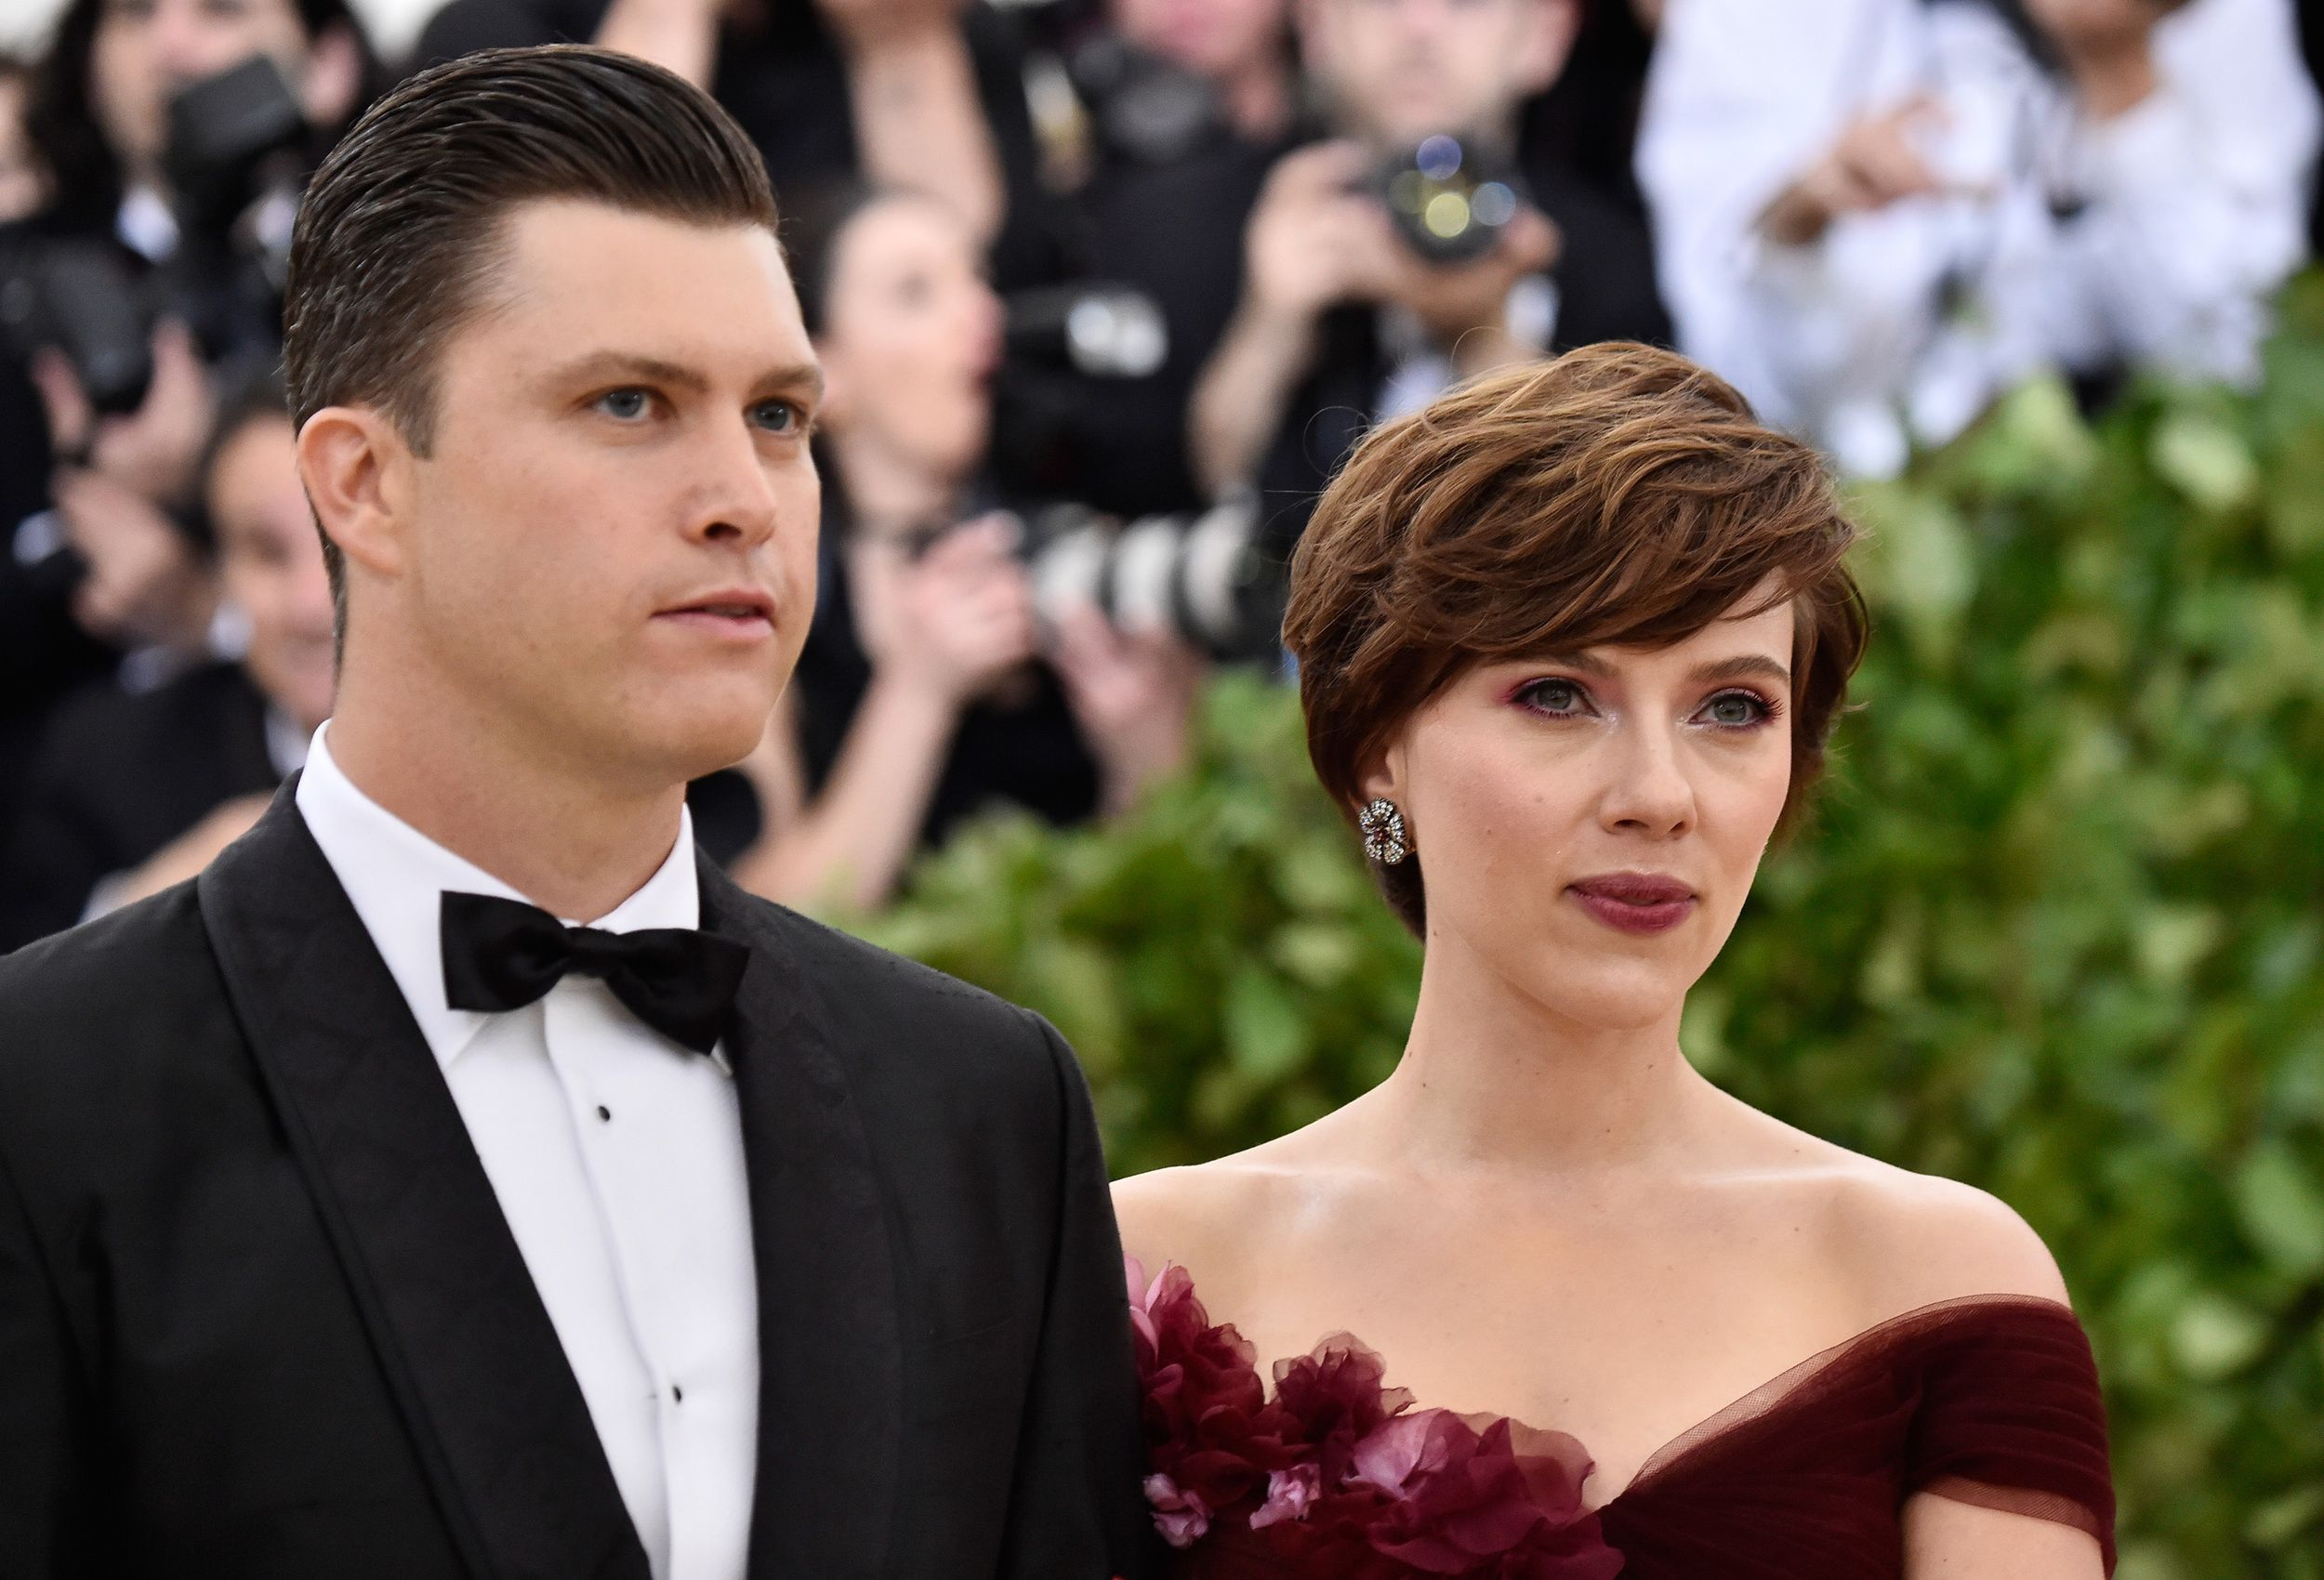 Scarlett Johansson Unveils Massive Engagement Ring From Colin Jost Scarlett Johansson Scarlett Cutest Couple Ever